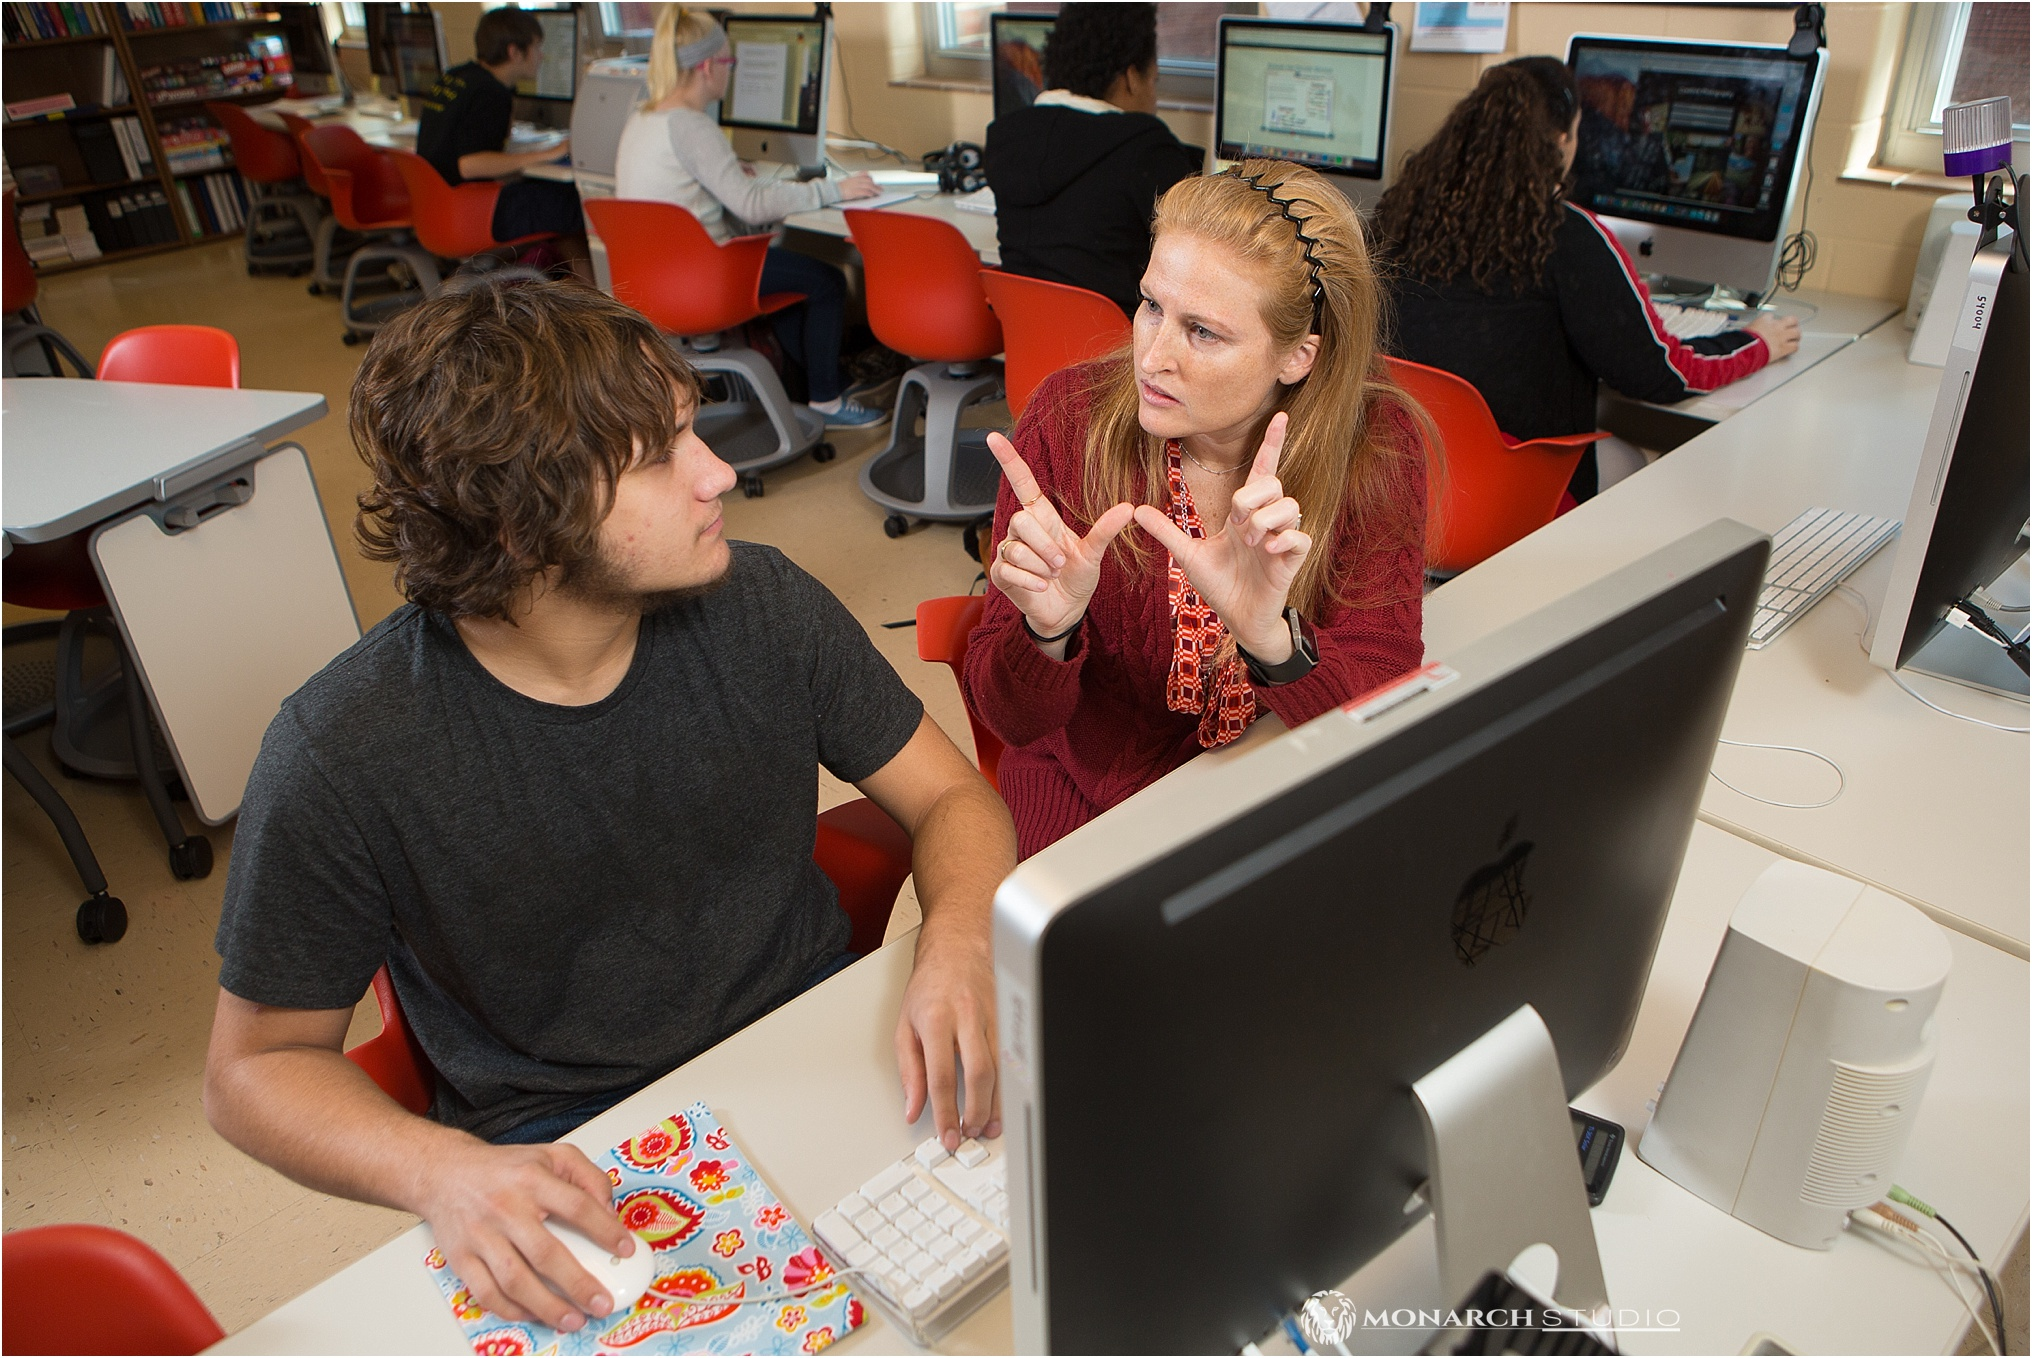 academic-marketing-photography-special-education-student-life-034.jpg